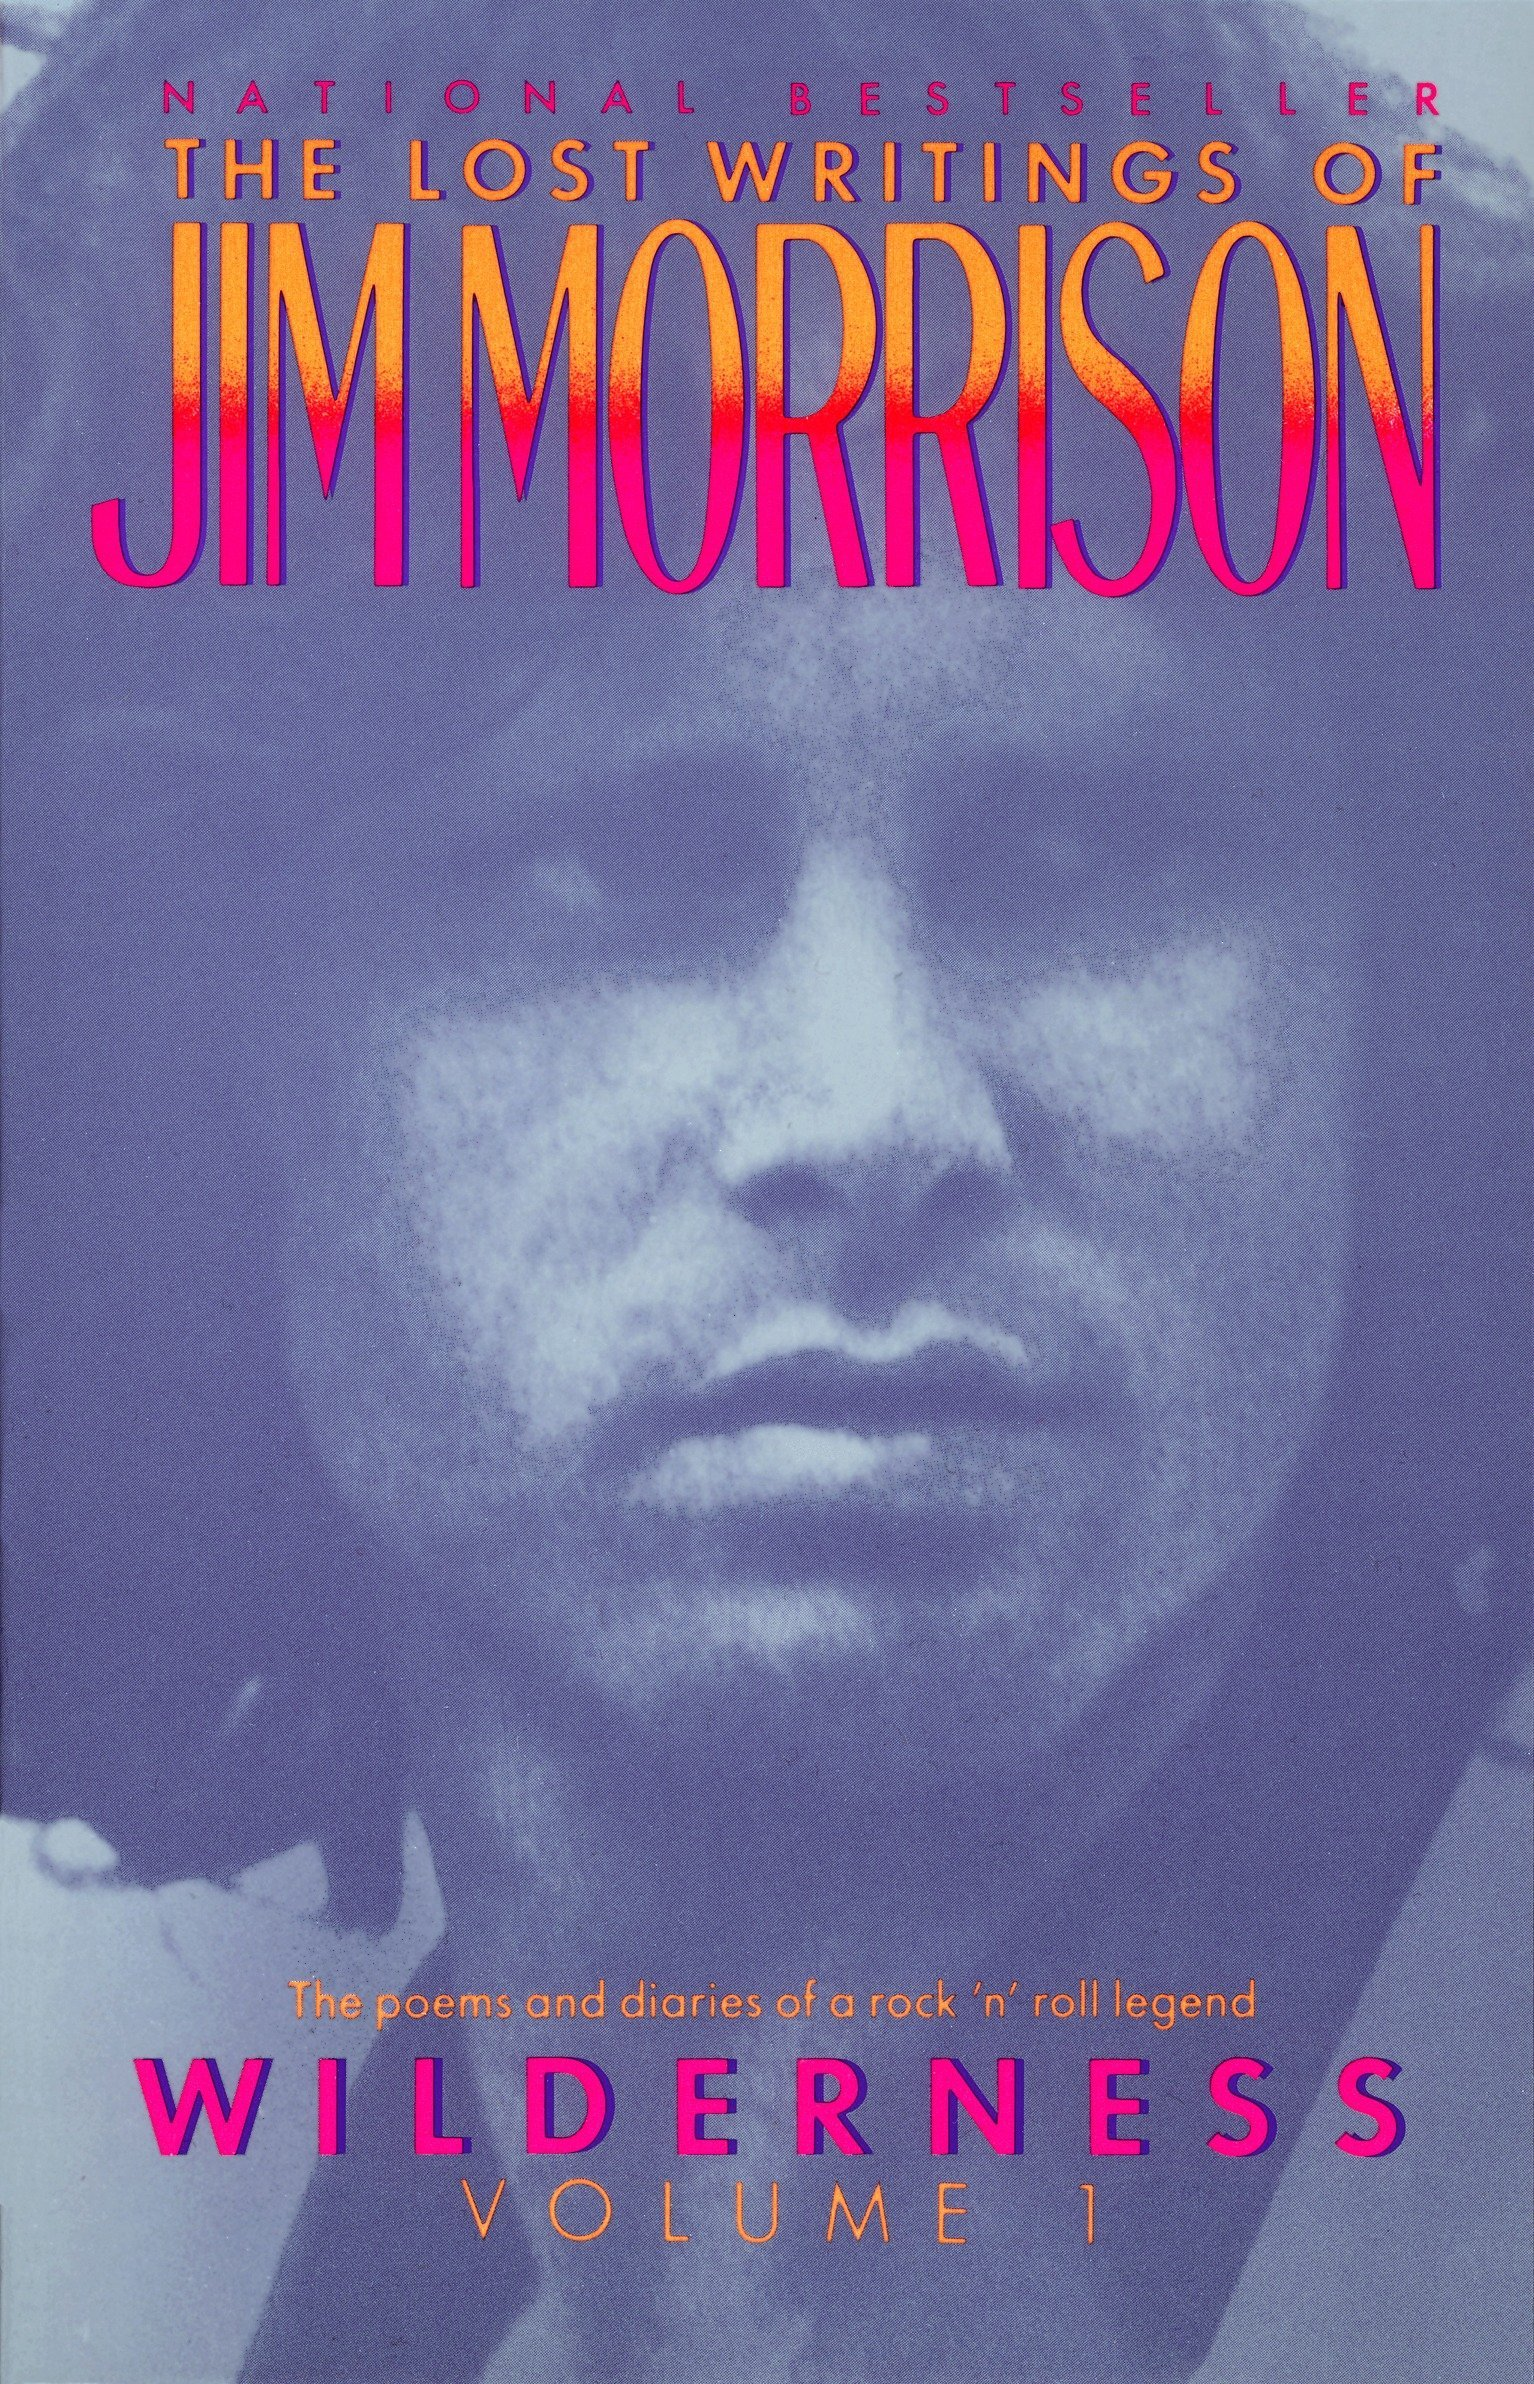 Image for The Lost Writings of Jim Morrison, Vol. 1: Wilderness